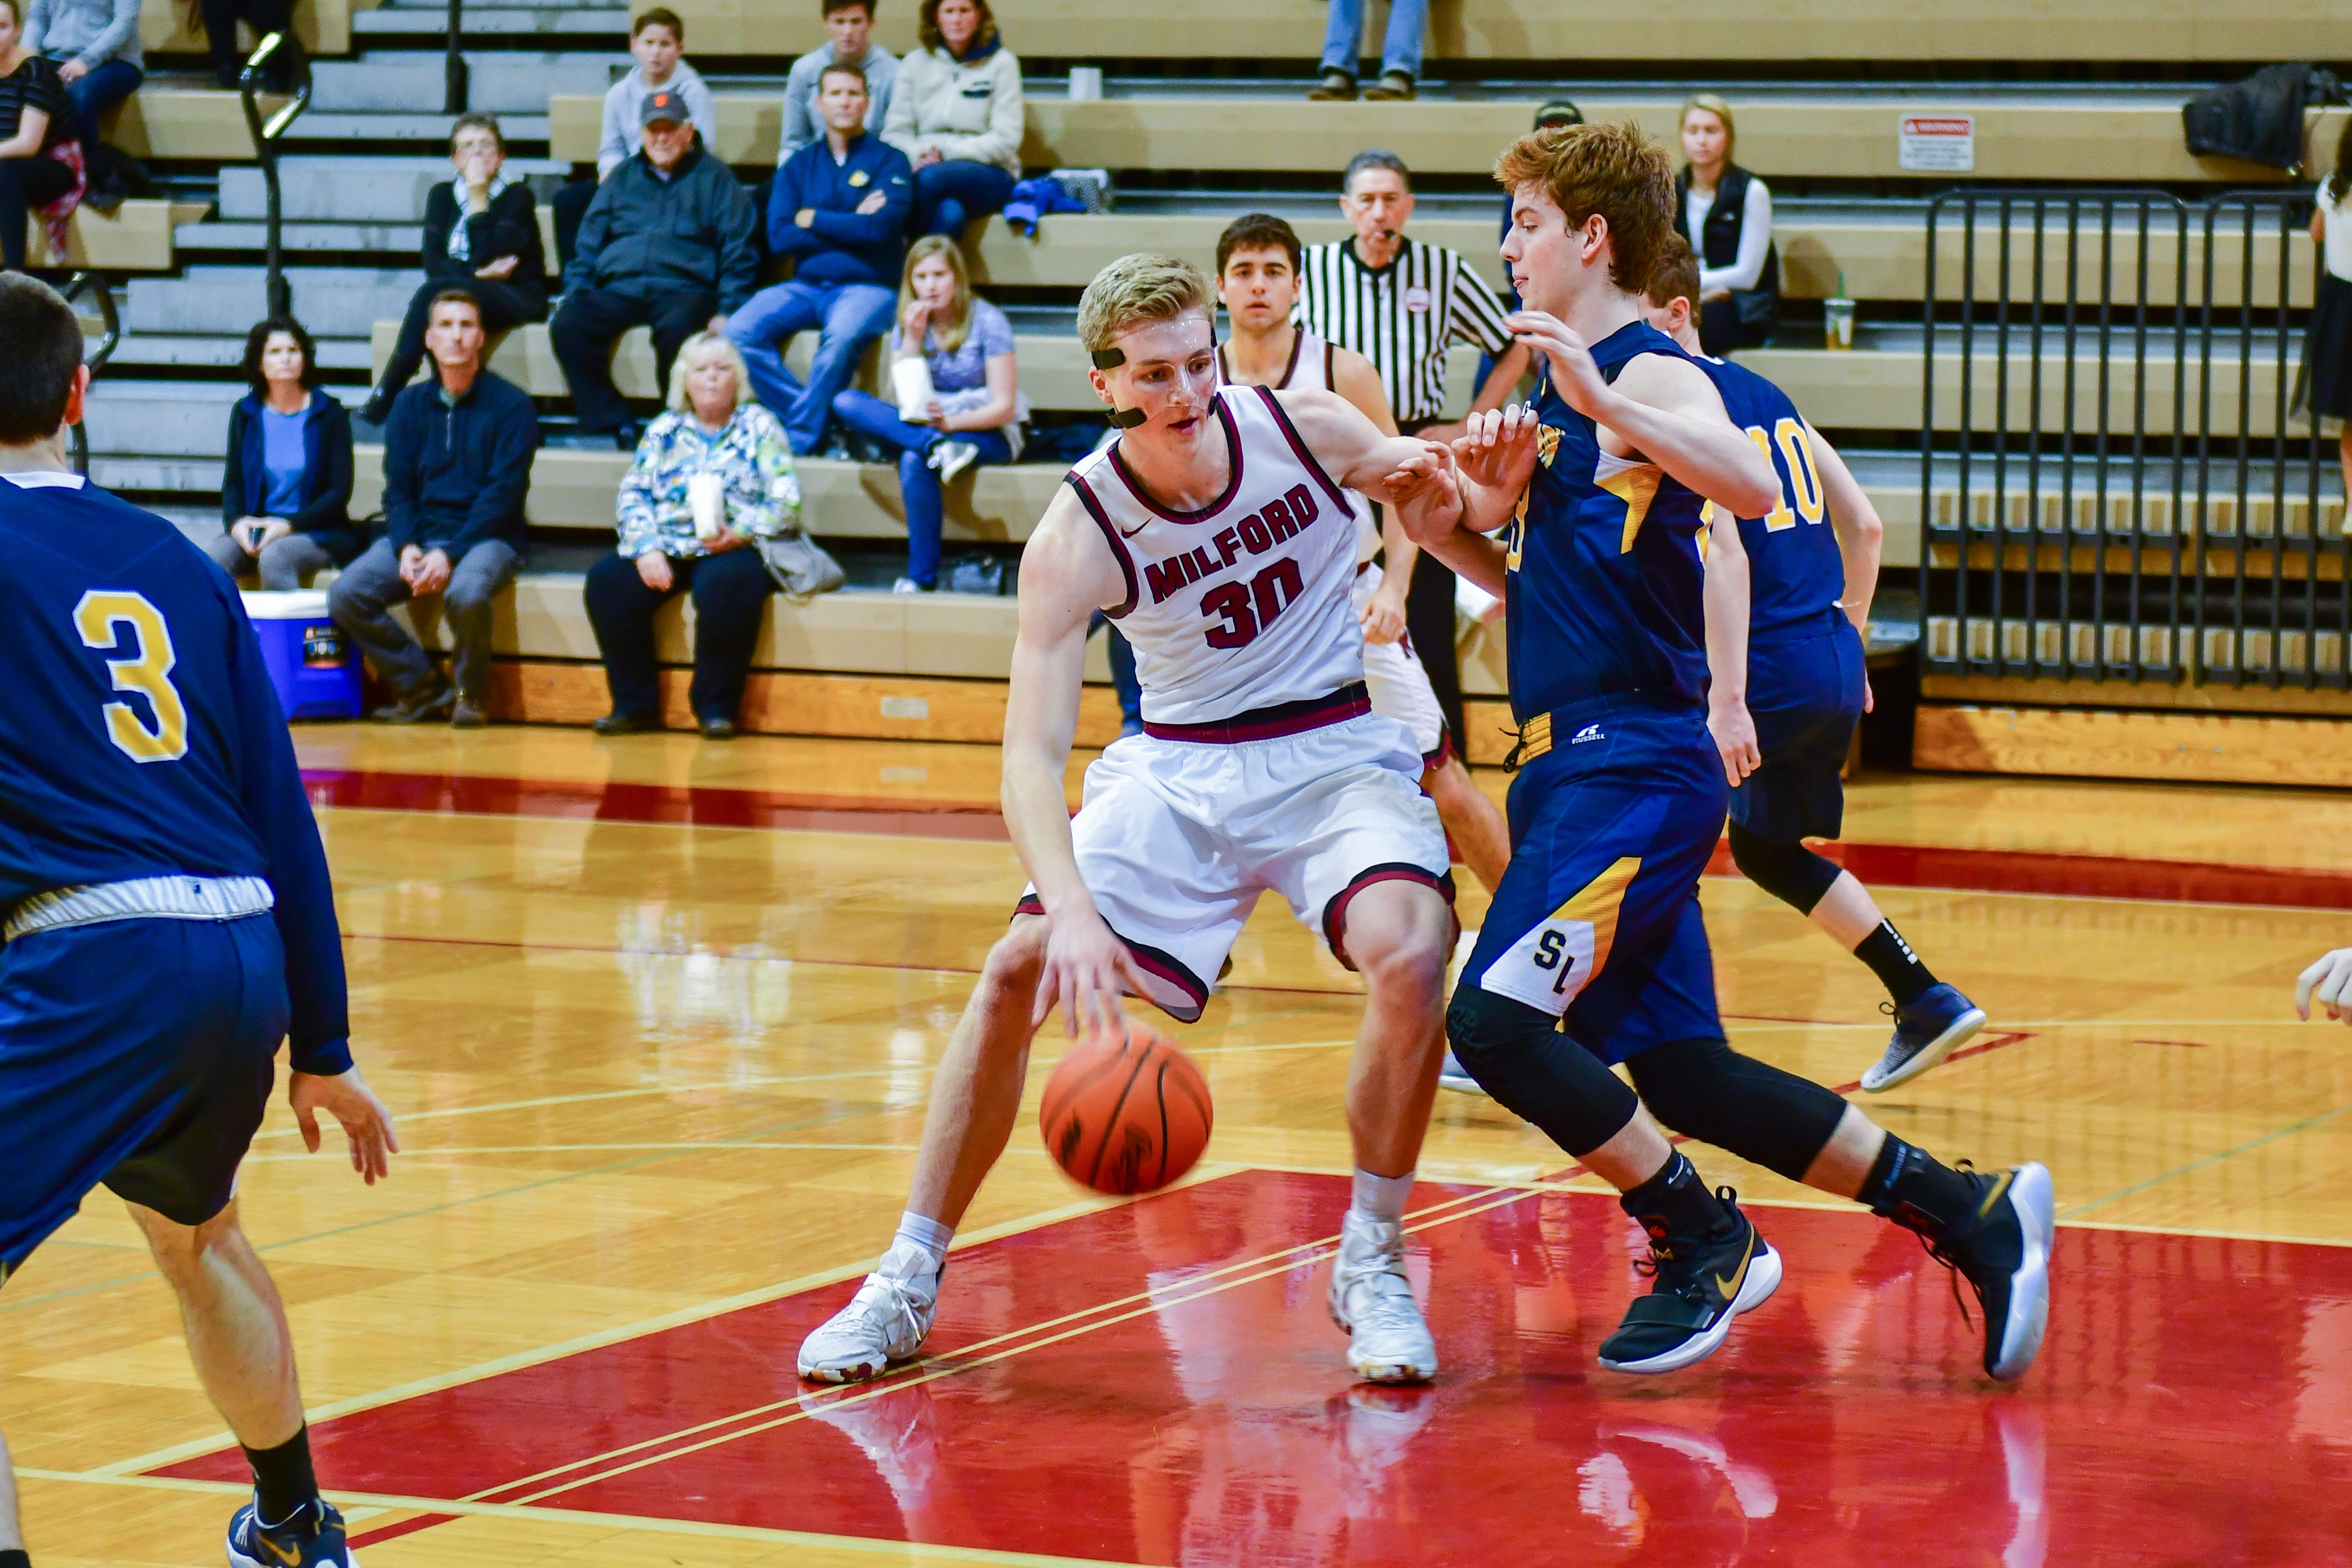 Milford Boys Basketball Finishes Regular Season 16-4 and a pair of Road Wins